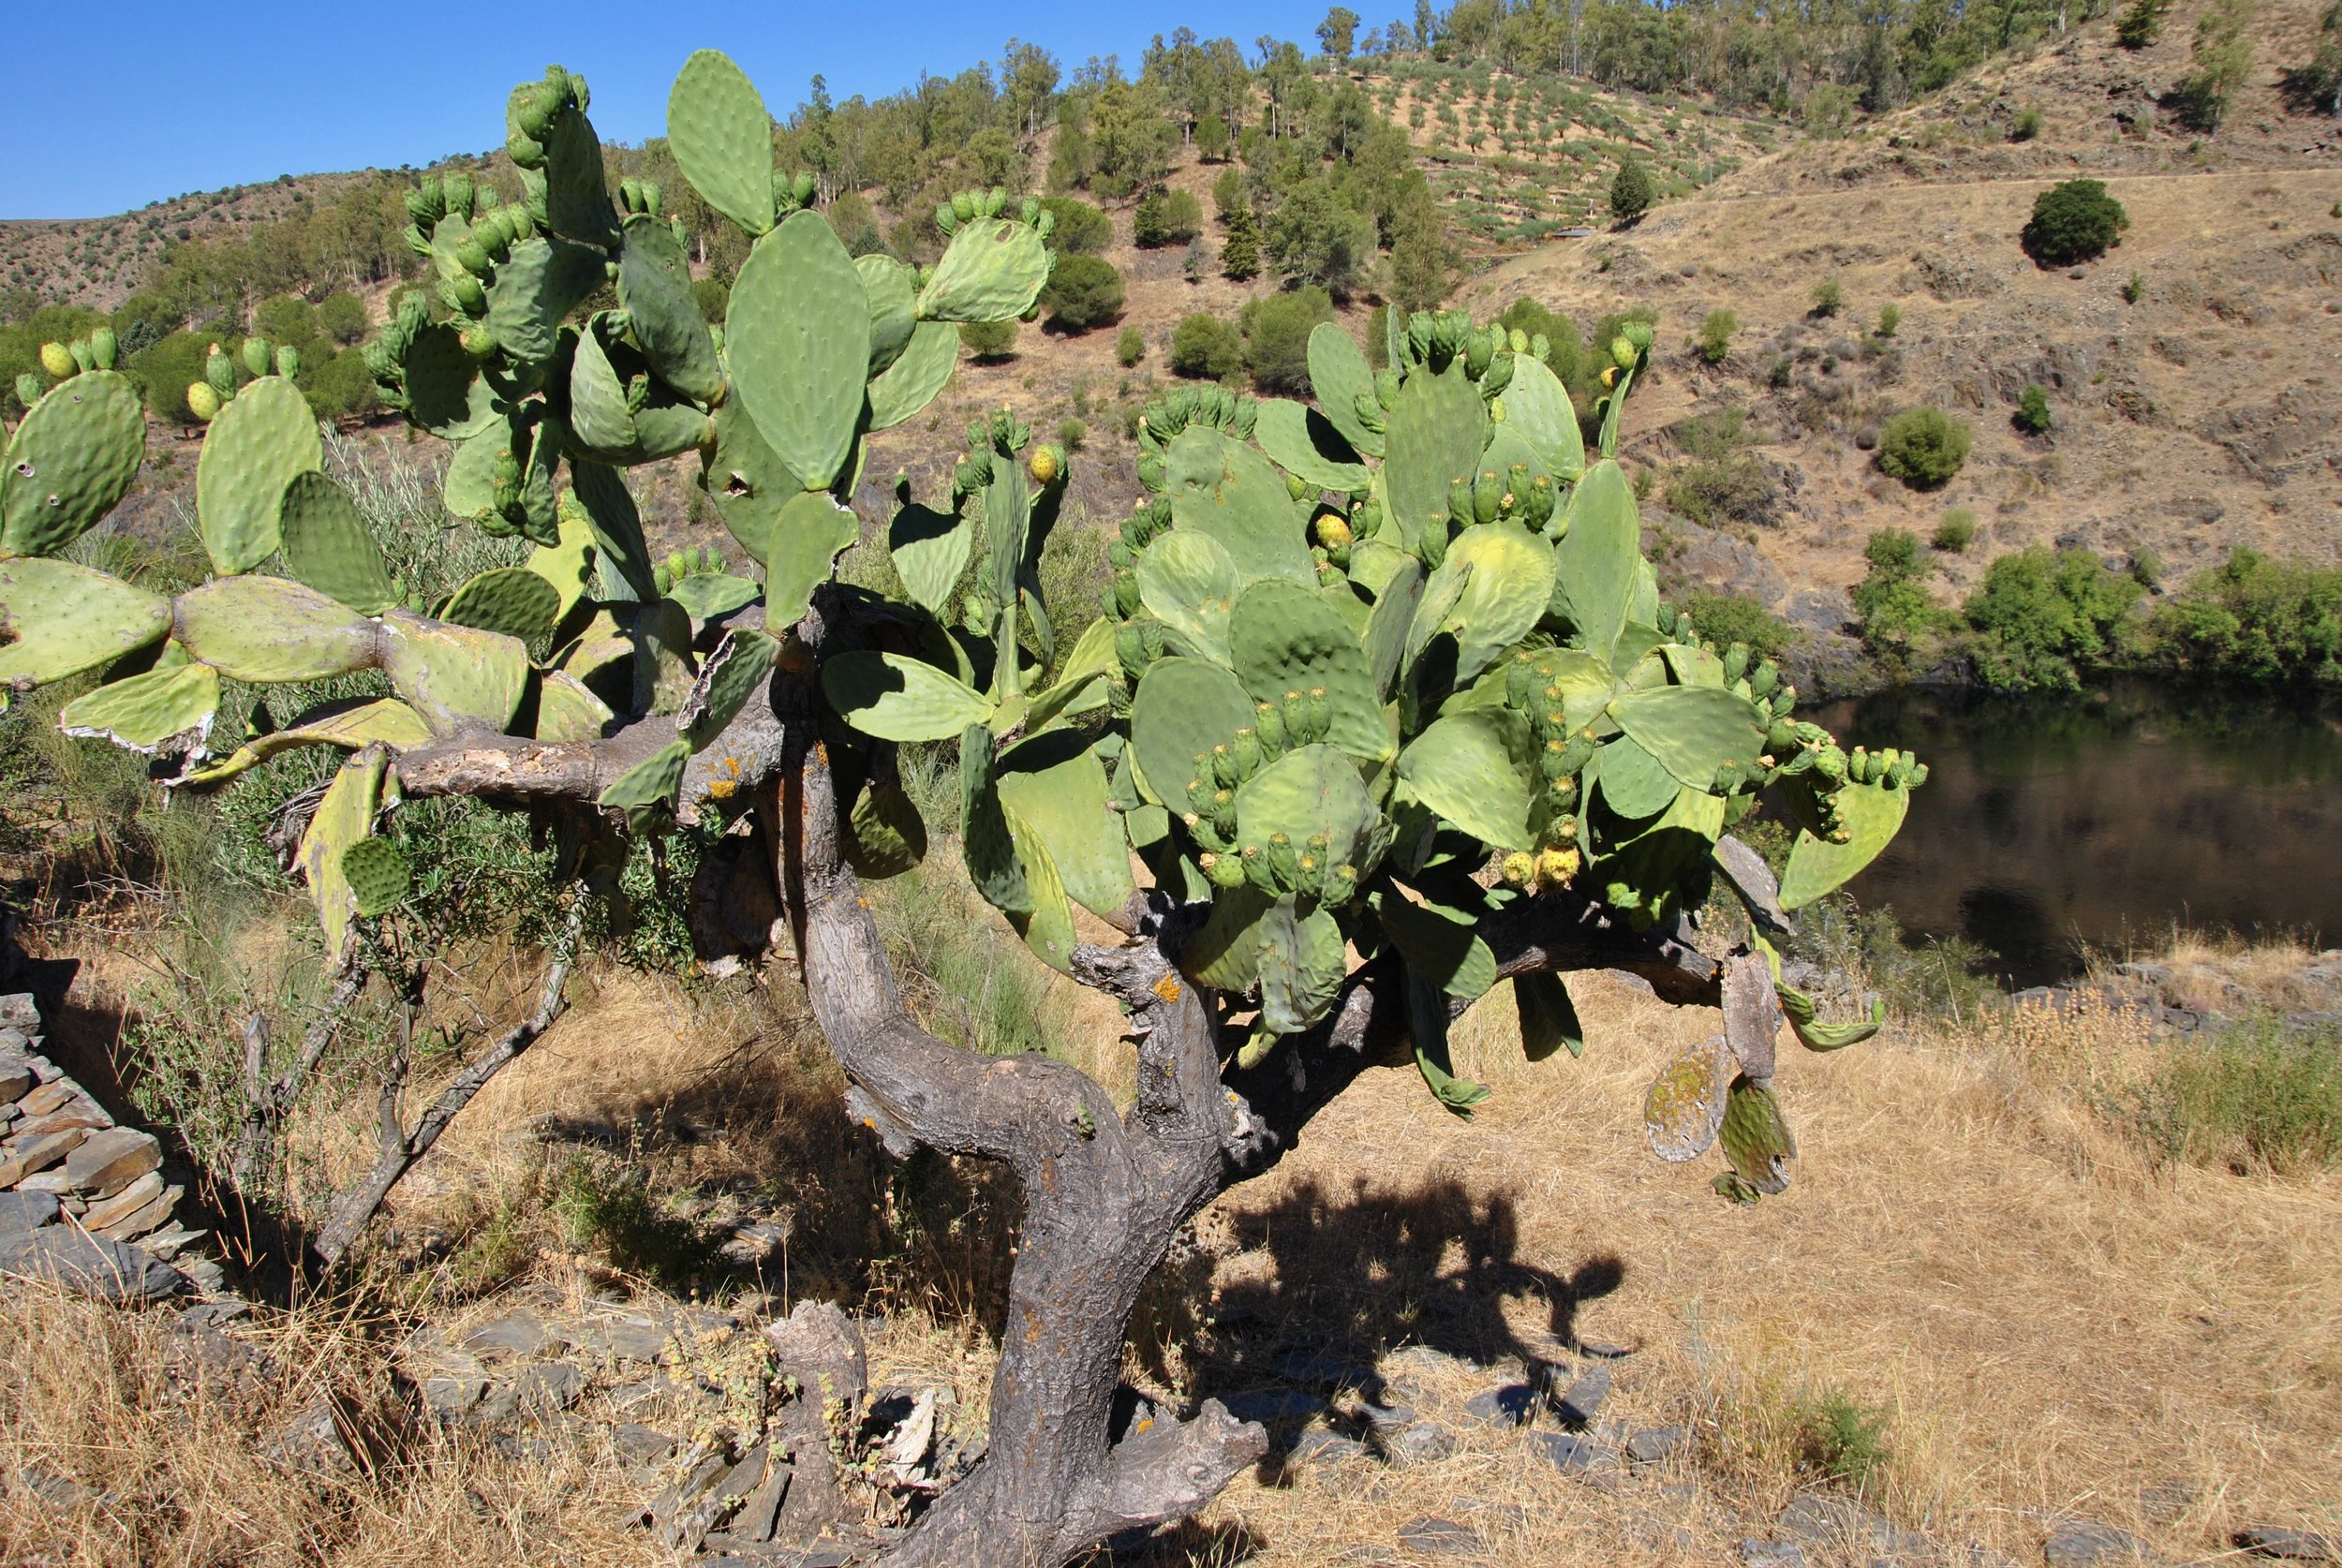 prickly-pears-spain